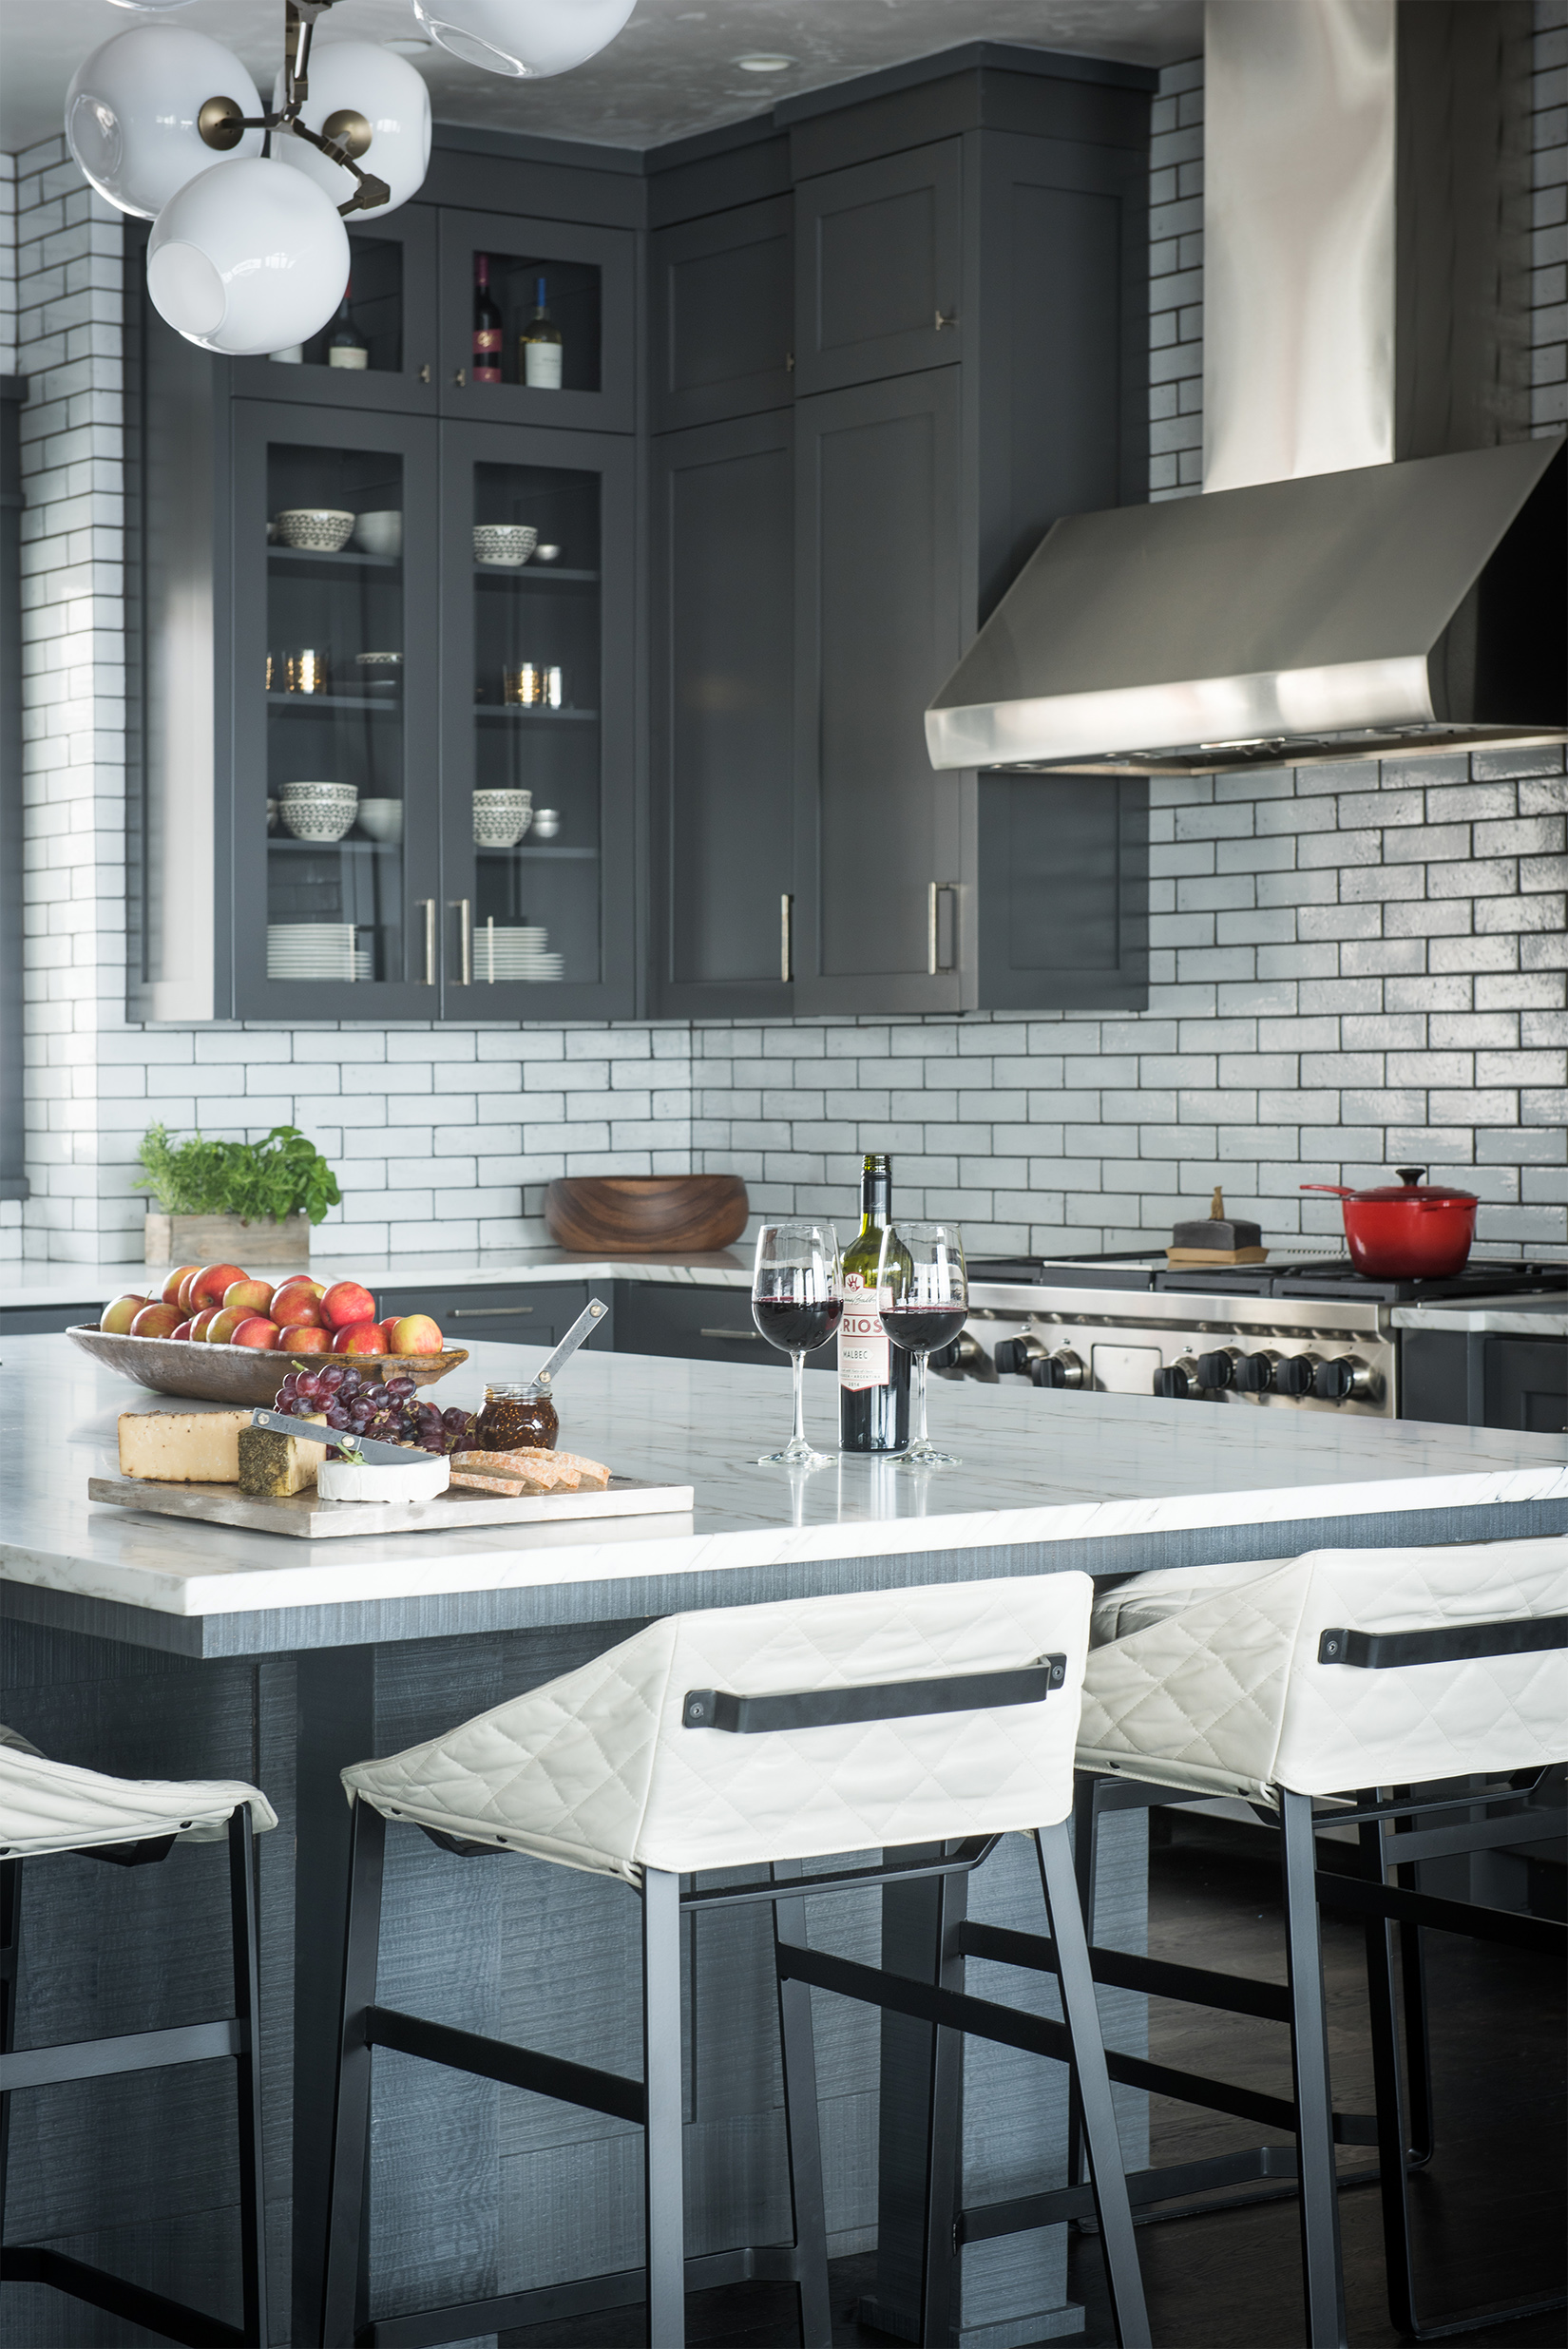 I love the subtle pops of color in this stylish black & white kitchen! Interior Design by  Karen Bow Interiors